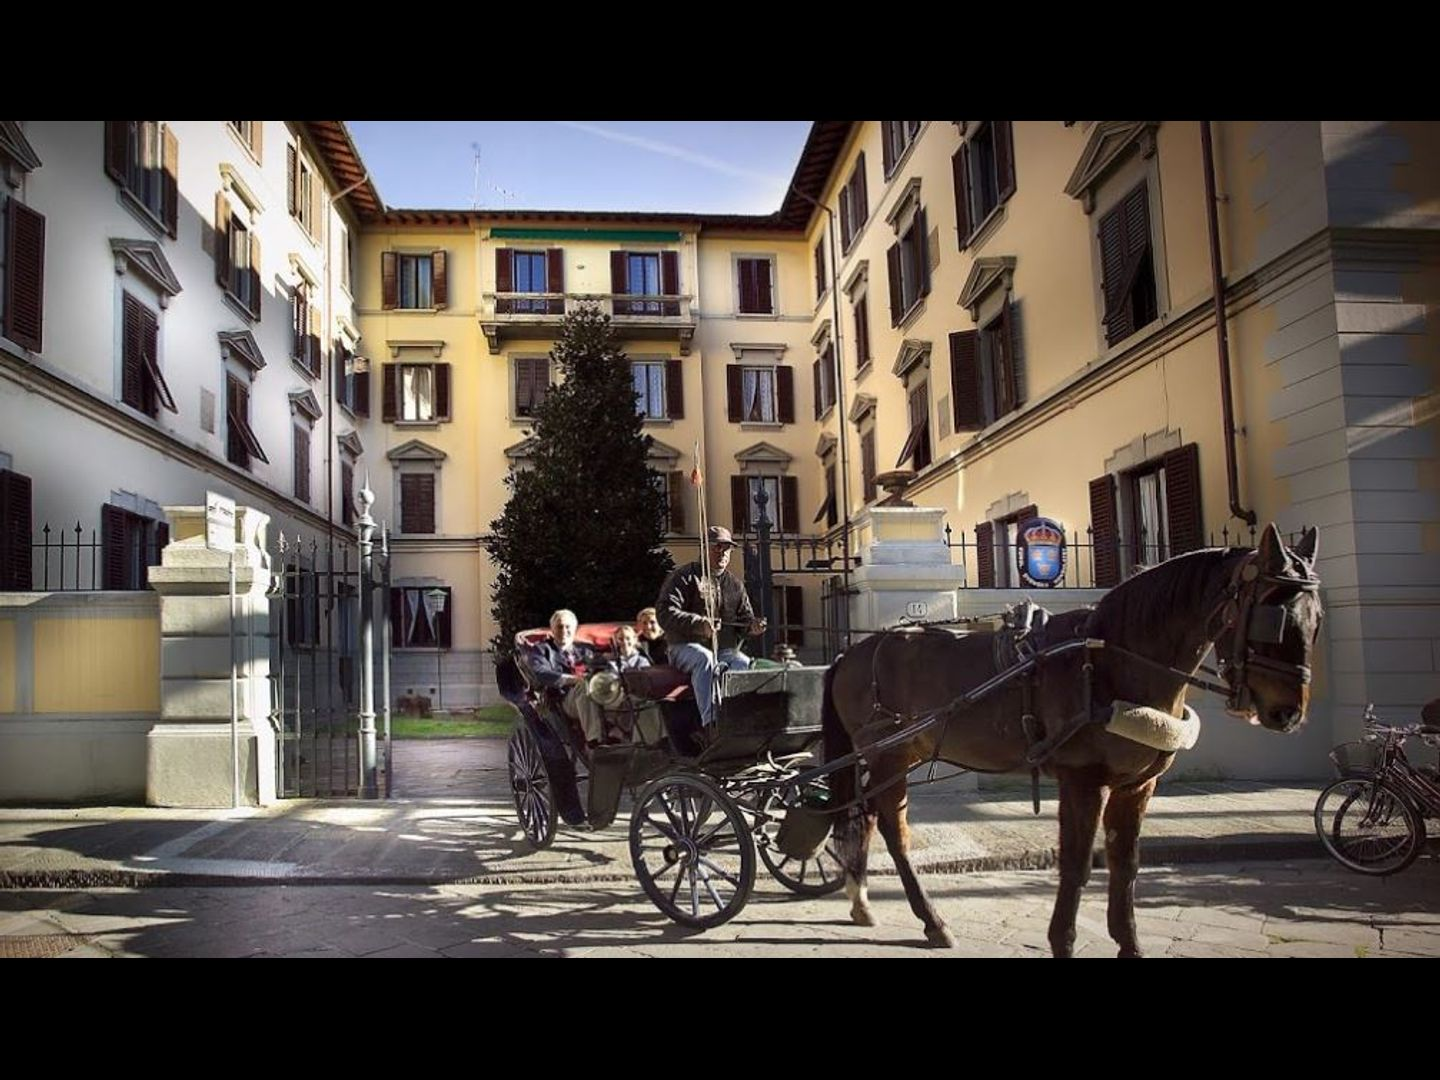 A person riding a horse drawn carriage on a city street at Residenza Johanna I.